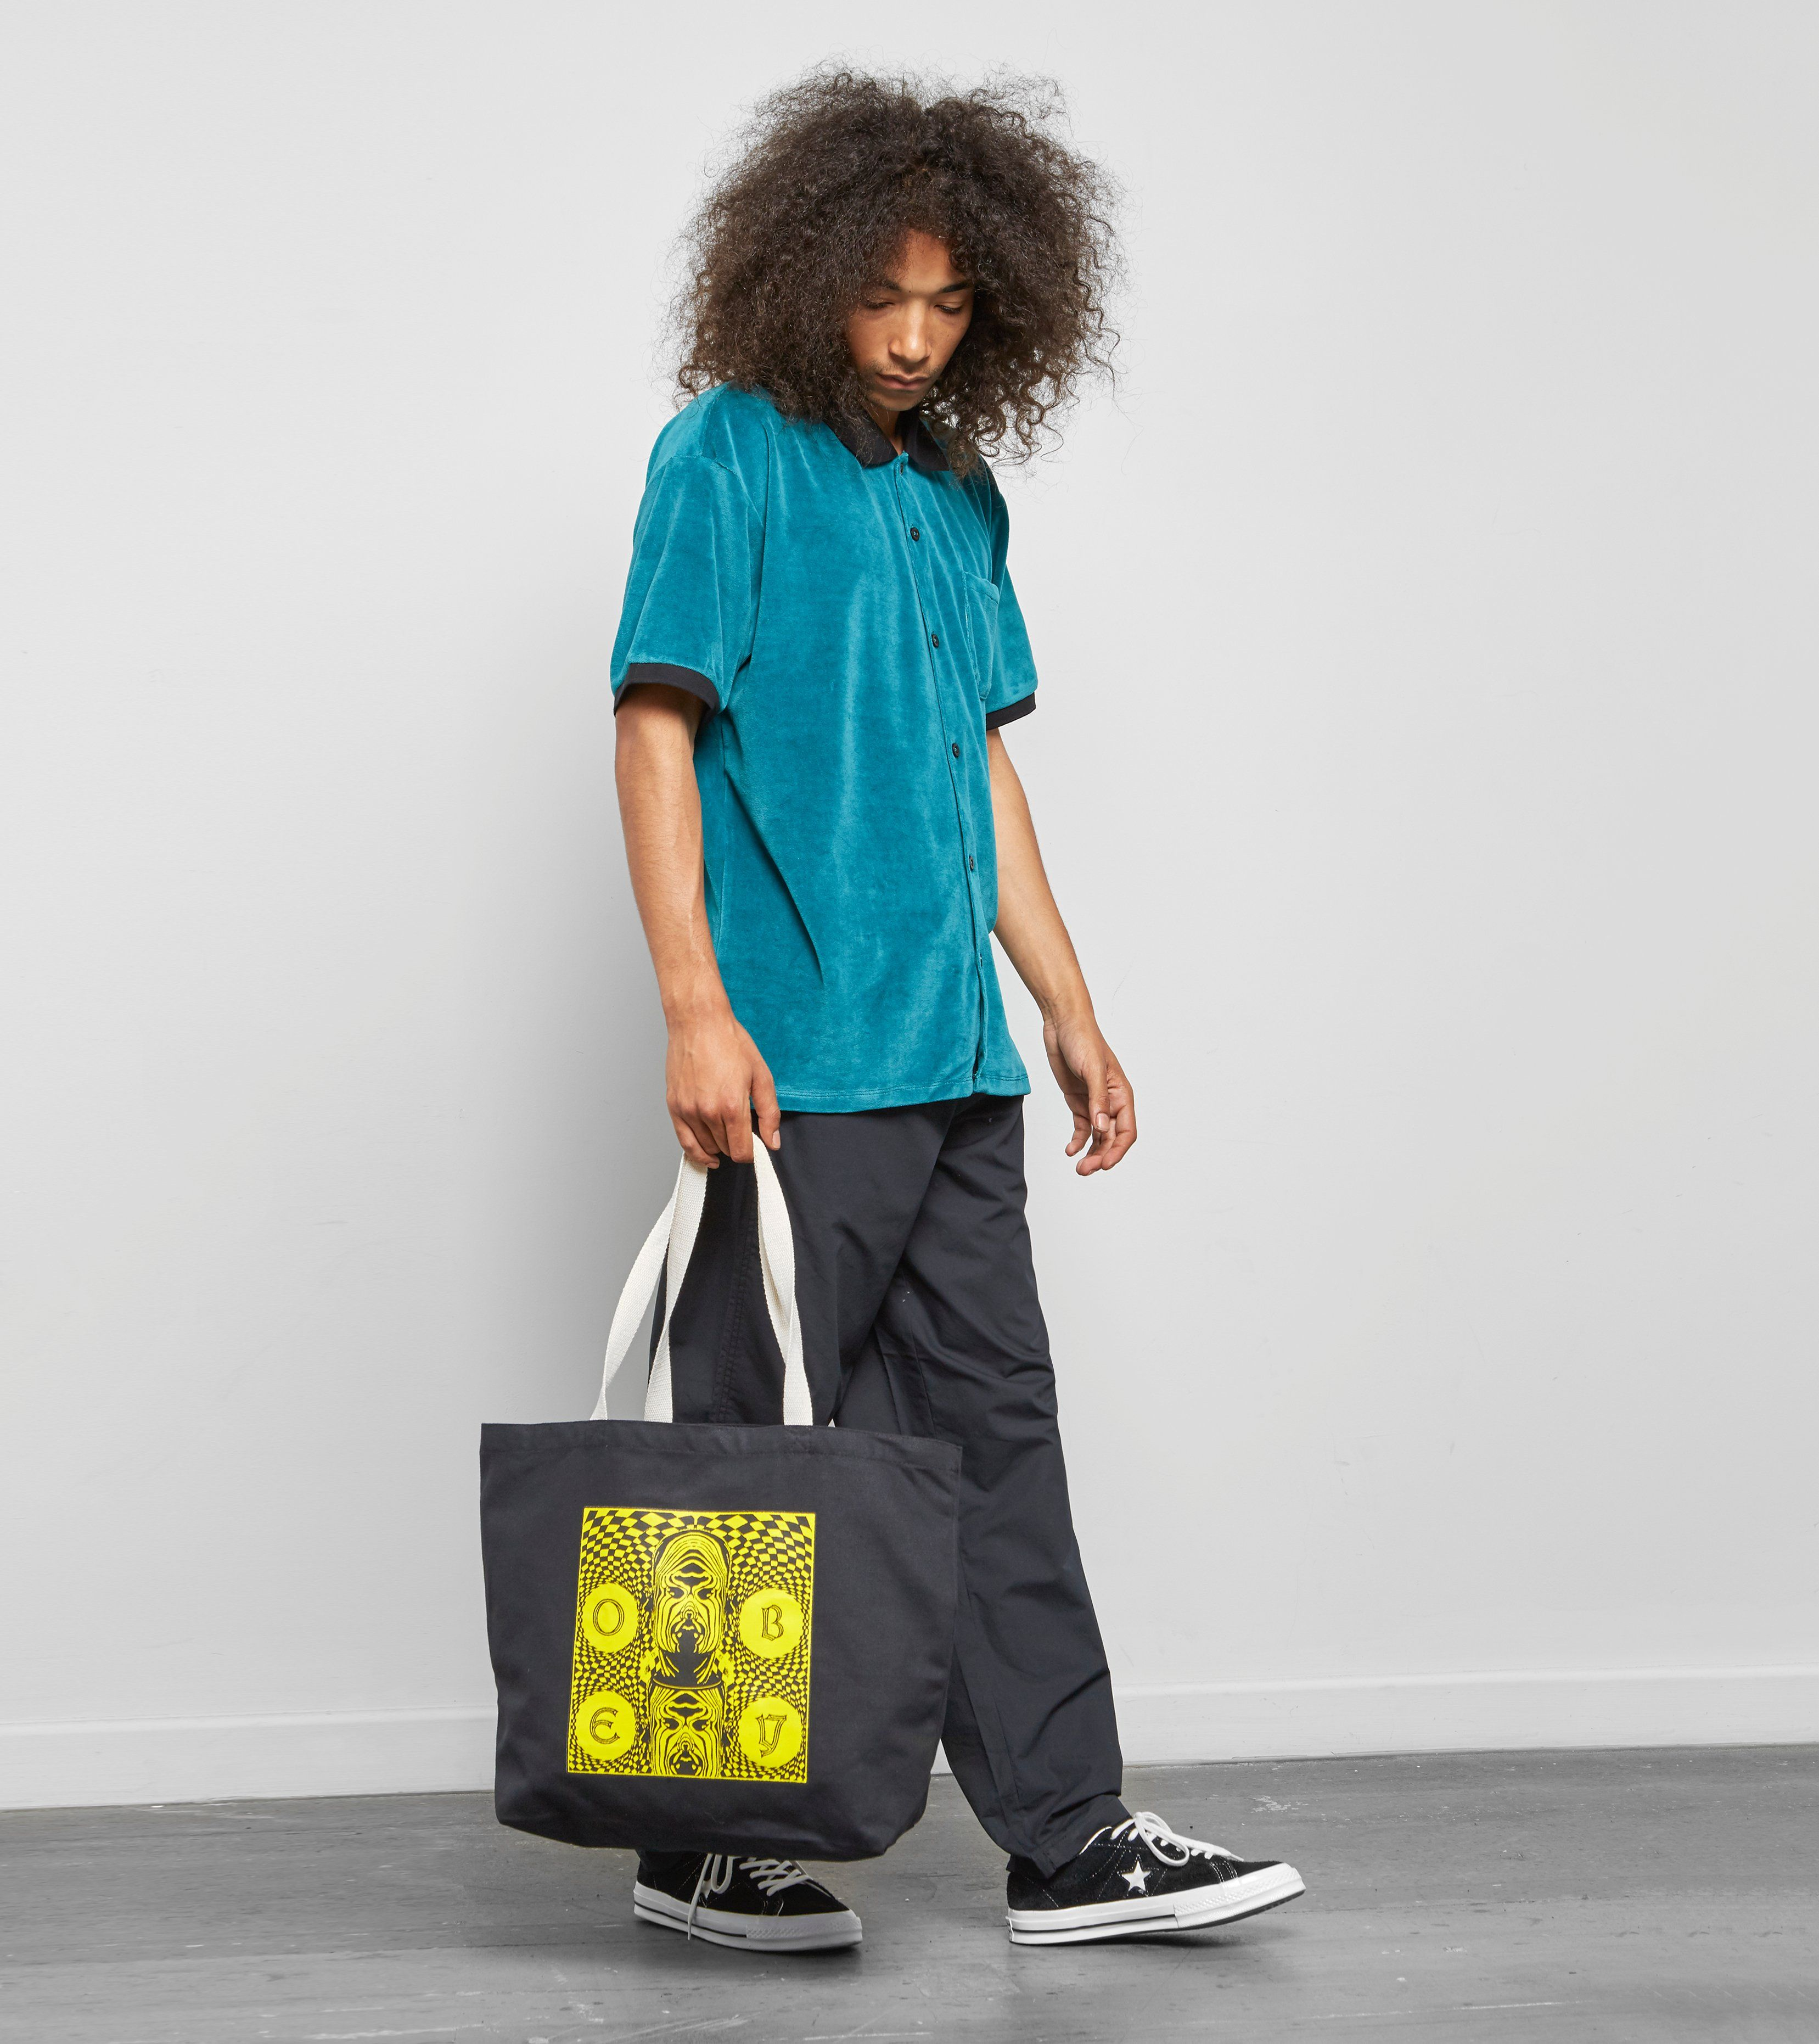 Obey Dreams Tote Bag